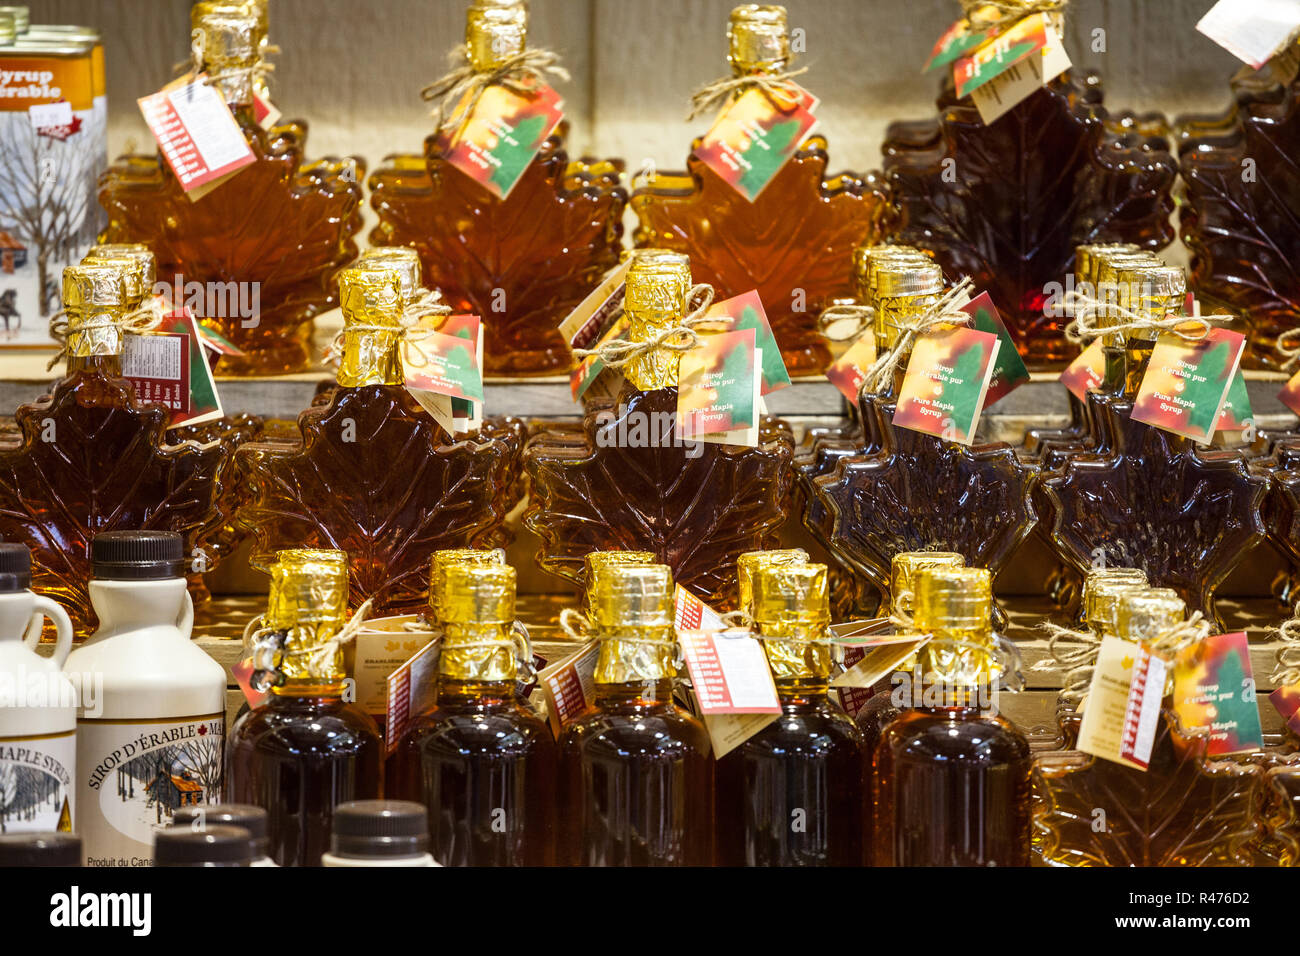 MONTREAL, CANADA - NOVEMBER 3, 2018: Maple Syrup bottles for sale on Montreal Jean Talon market. Quebec is the highest producer of Maple syrup in the  - Stock Image